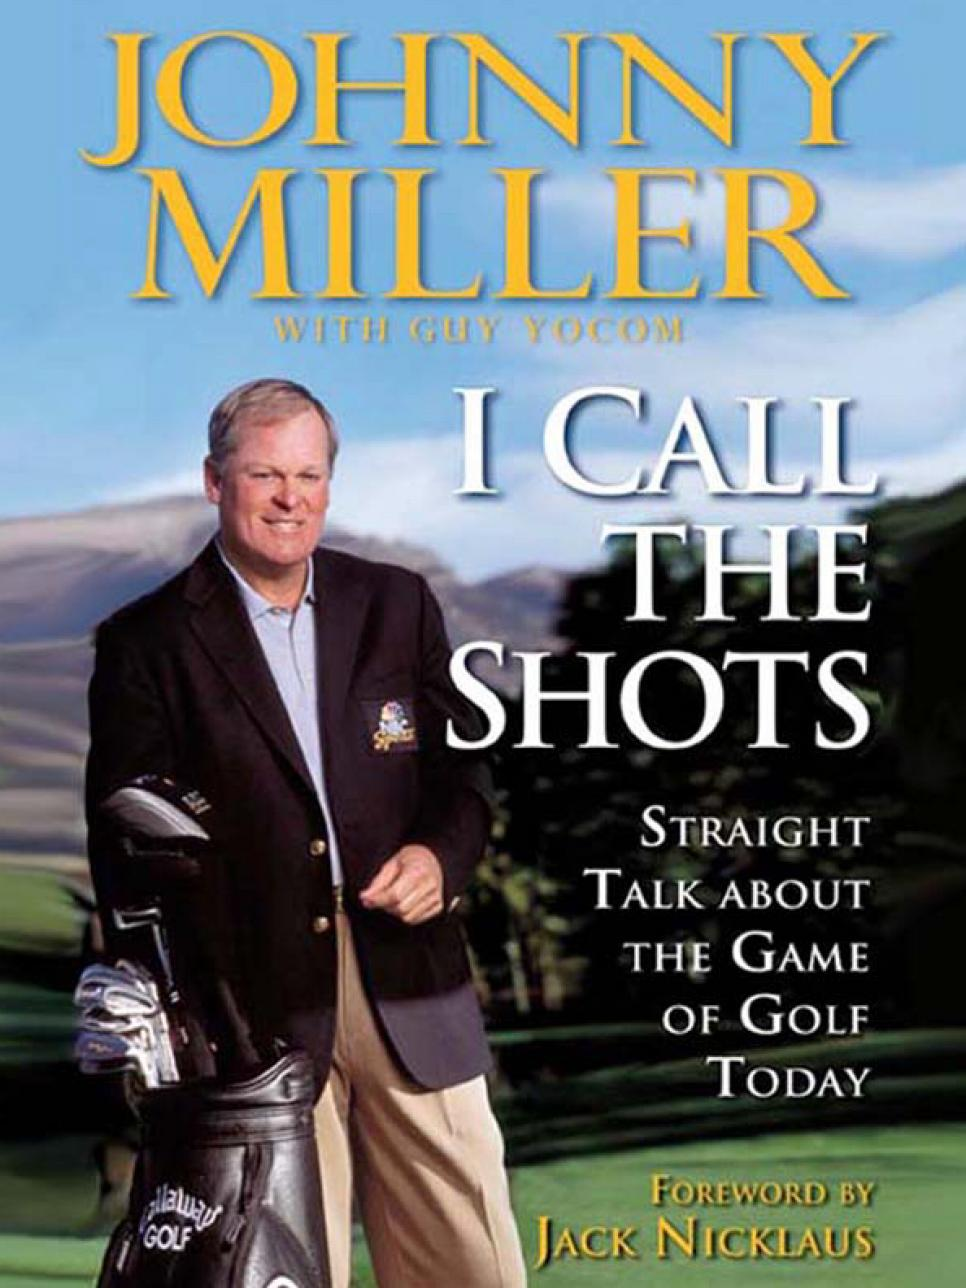 Johnny-Miller-I-Call-the-Shots.jpg